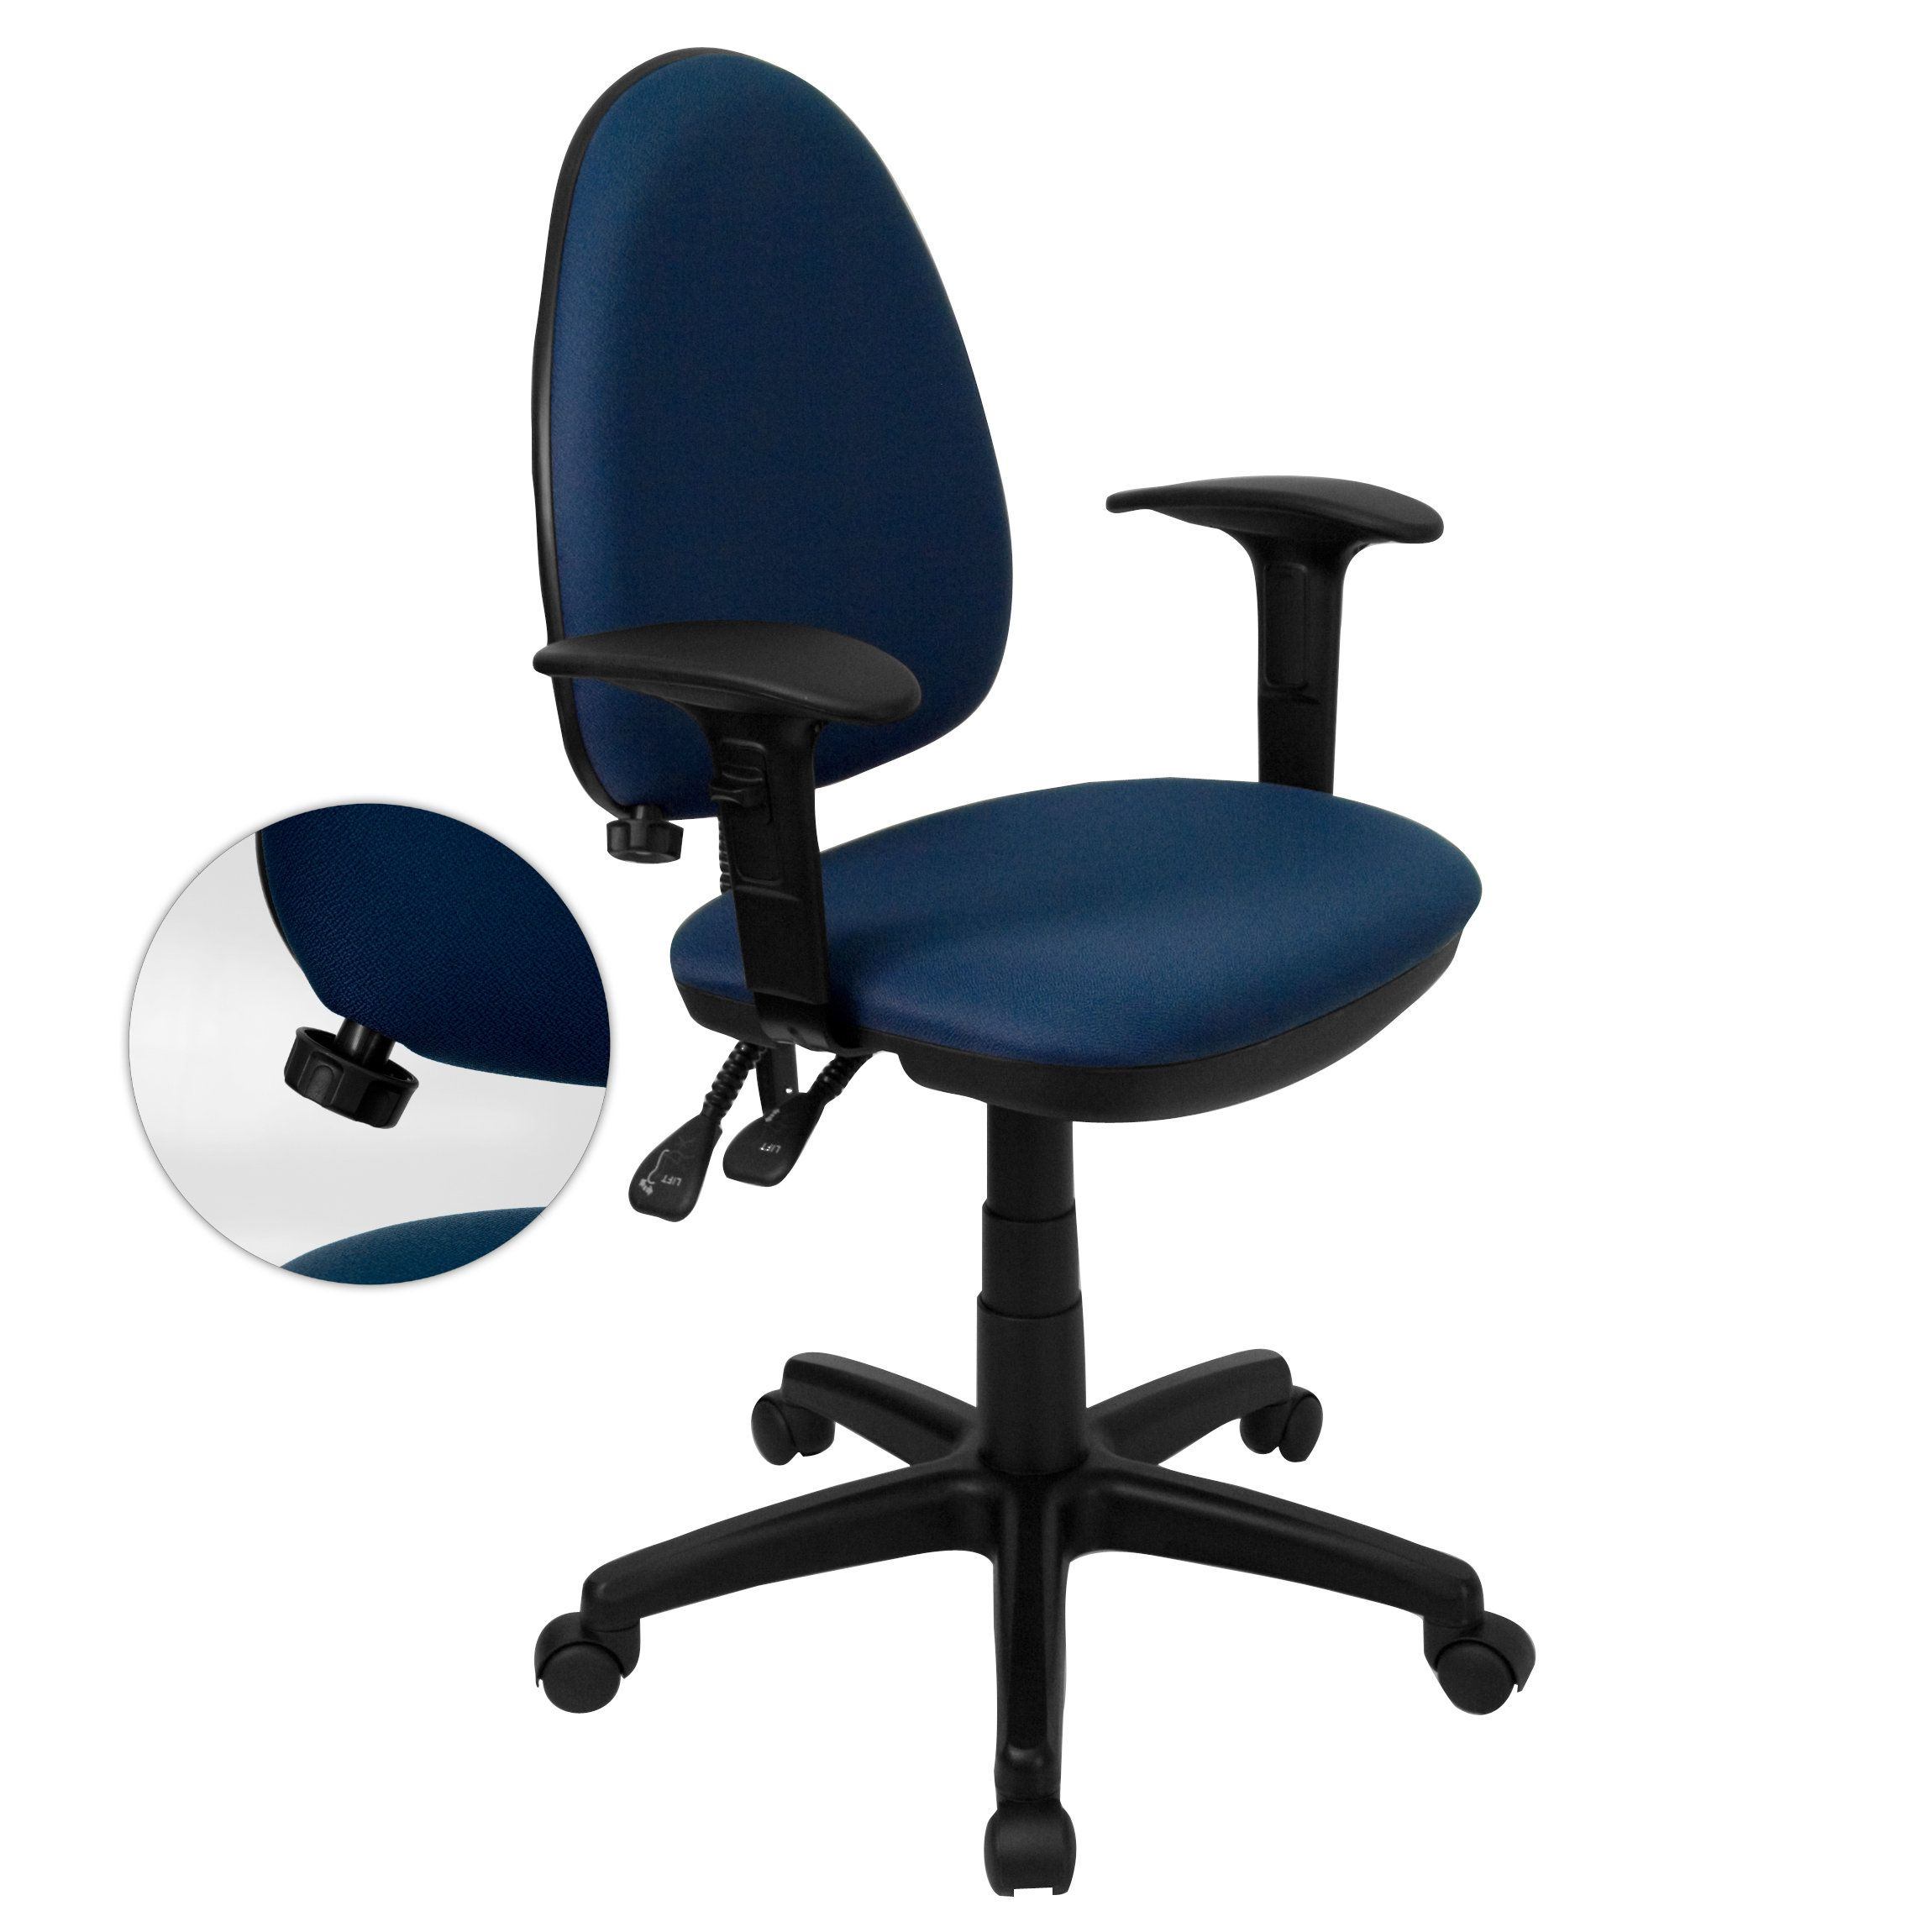 Ergonomic Chairs Office Supplies Free Shipping On Orders Over 45 At